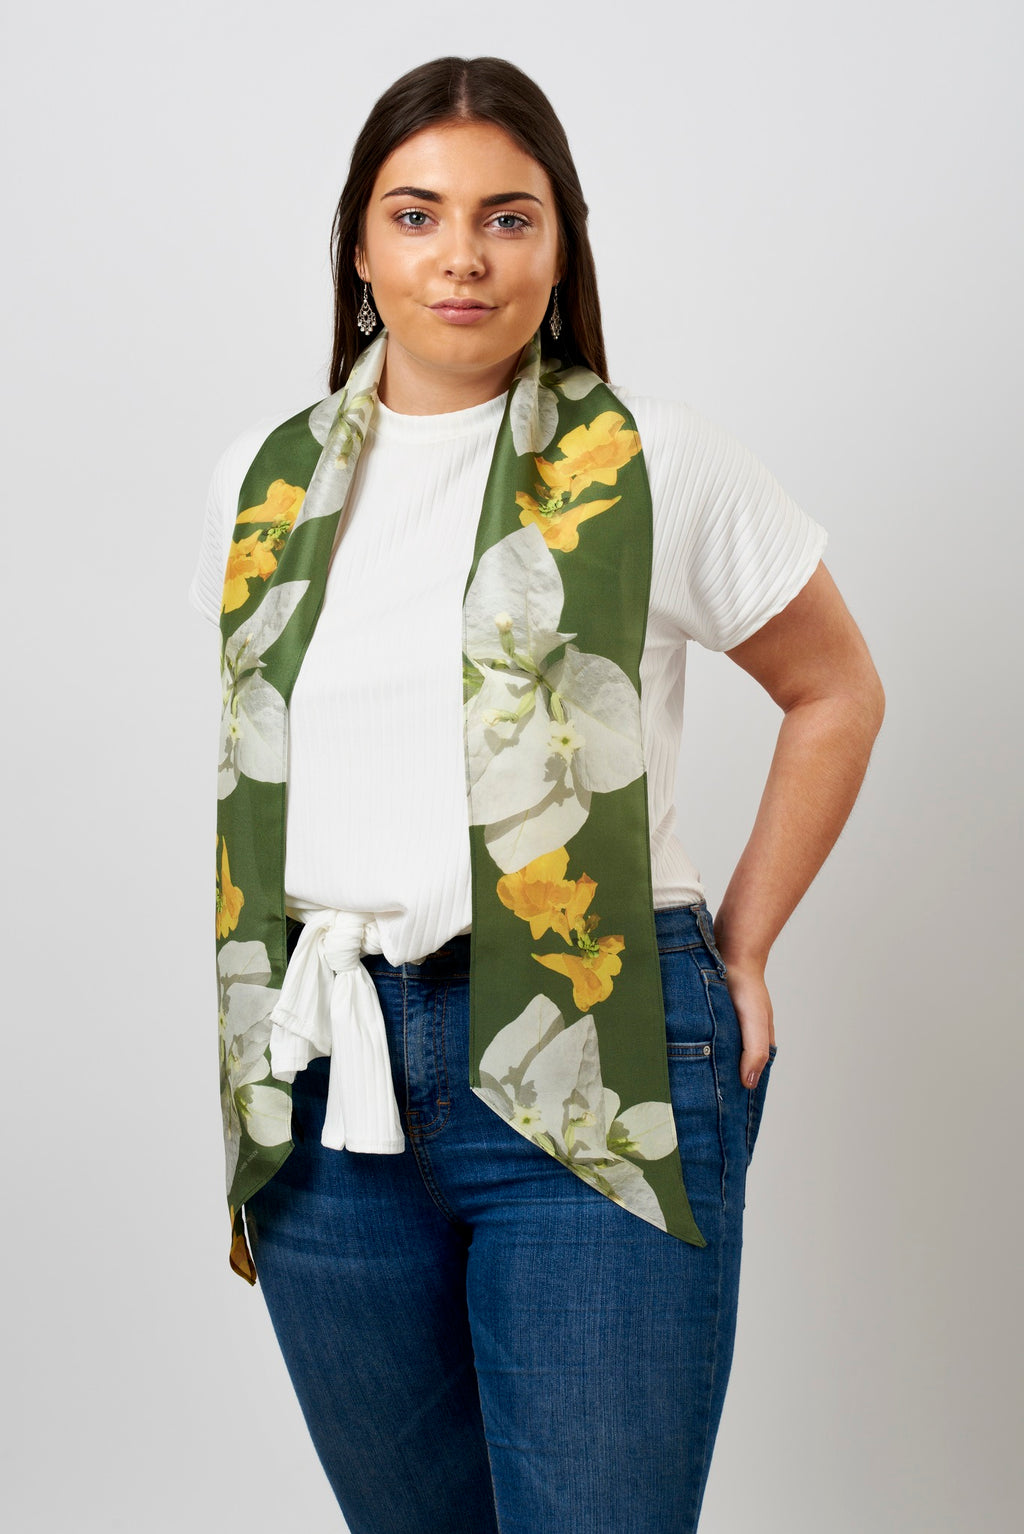 Trumpet flower long silk scarf